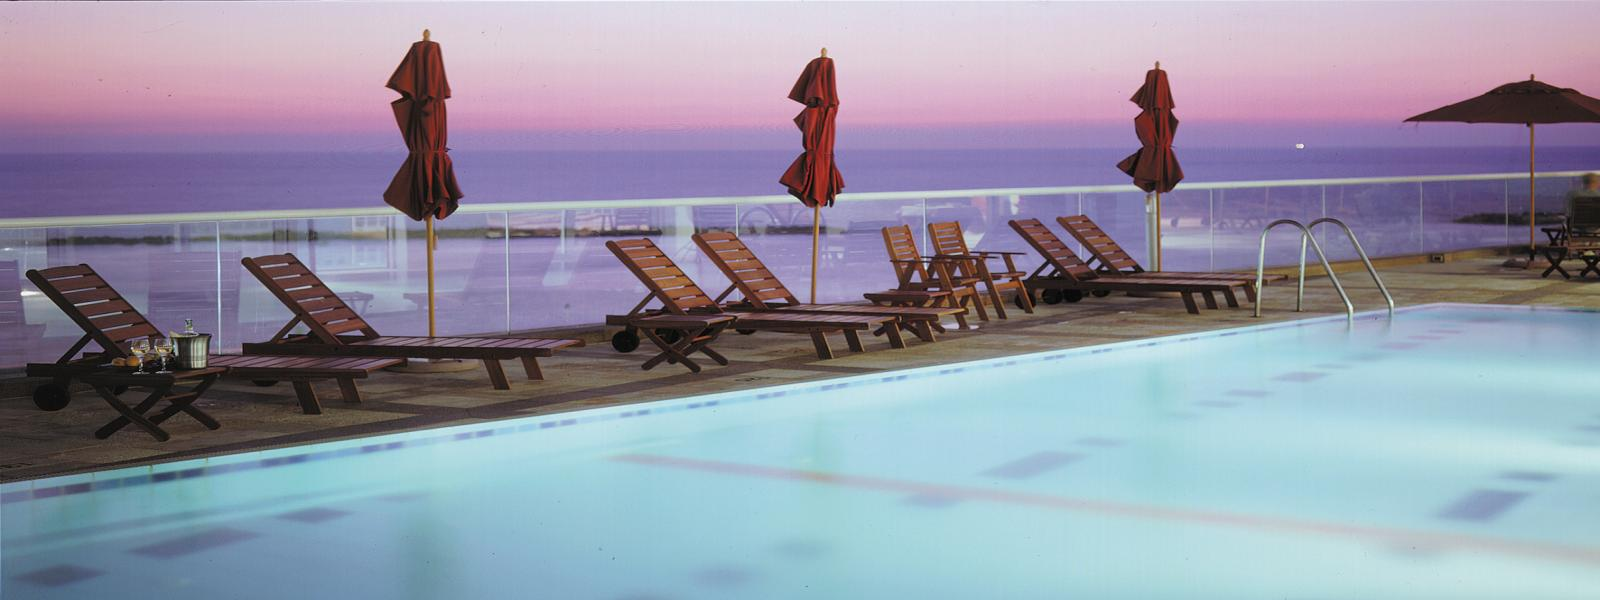 Dan Tel-Aviv pool at sunset picture